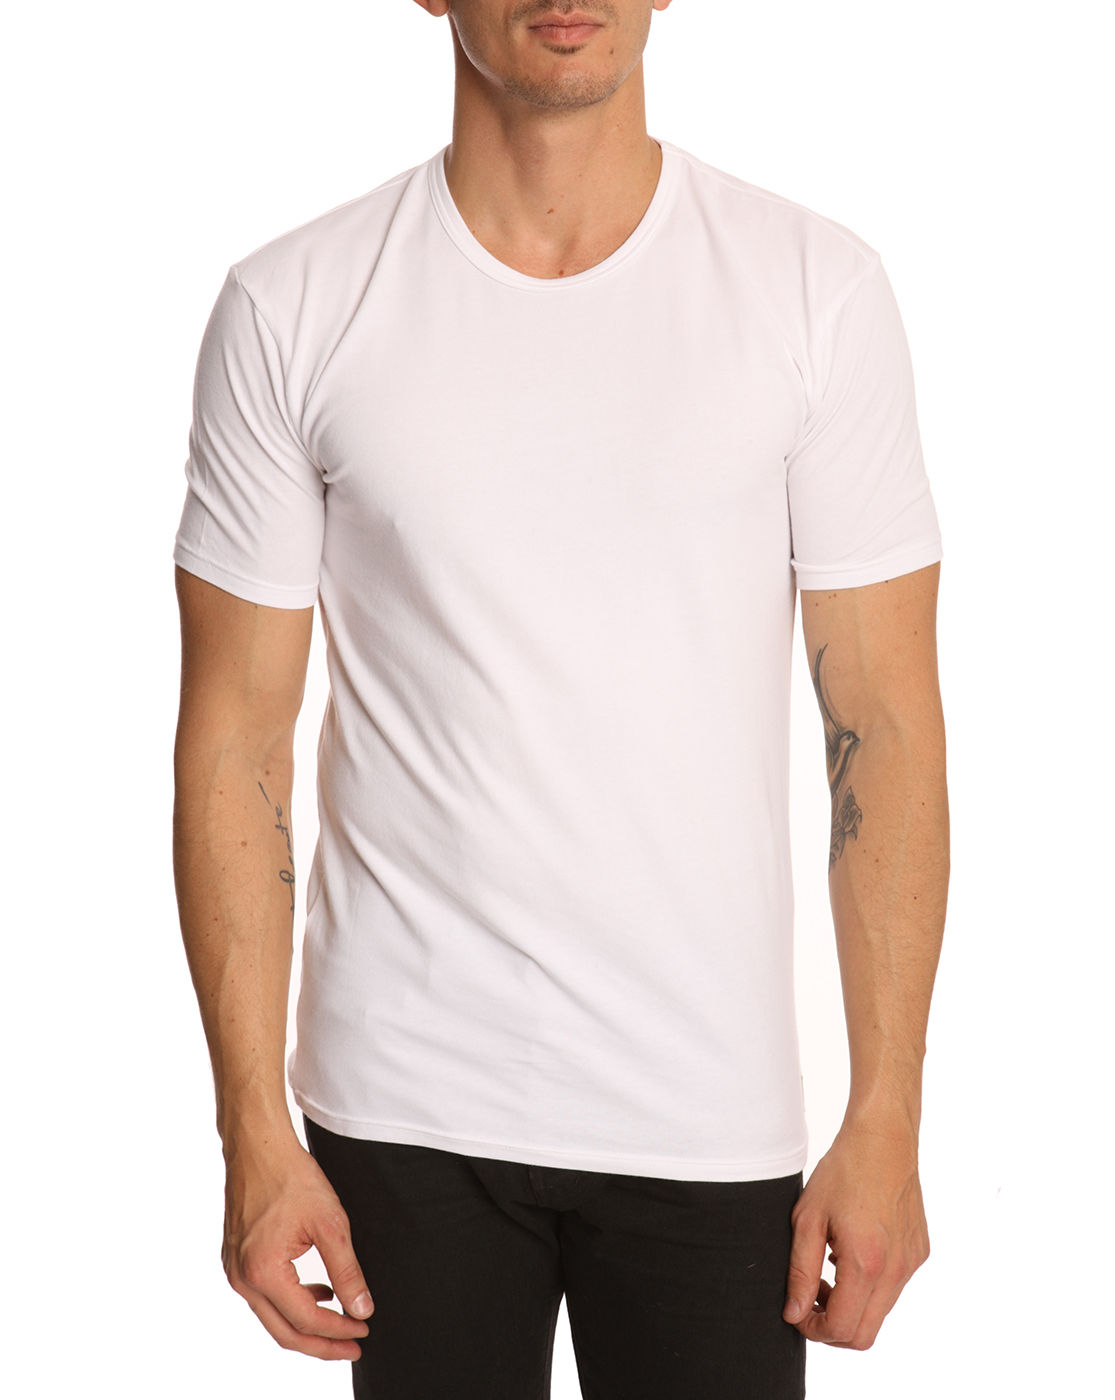 calvin klein pack of 2 white t shirts in white for men lyst. Black Bedroom Furniture Sets. Home Design Ideas